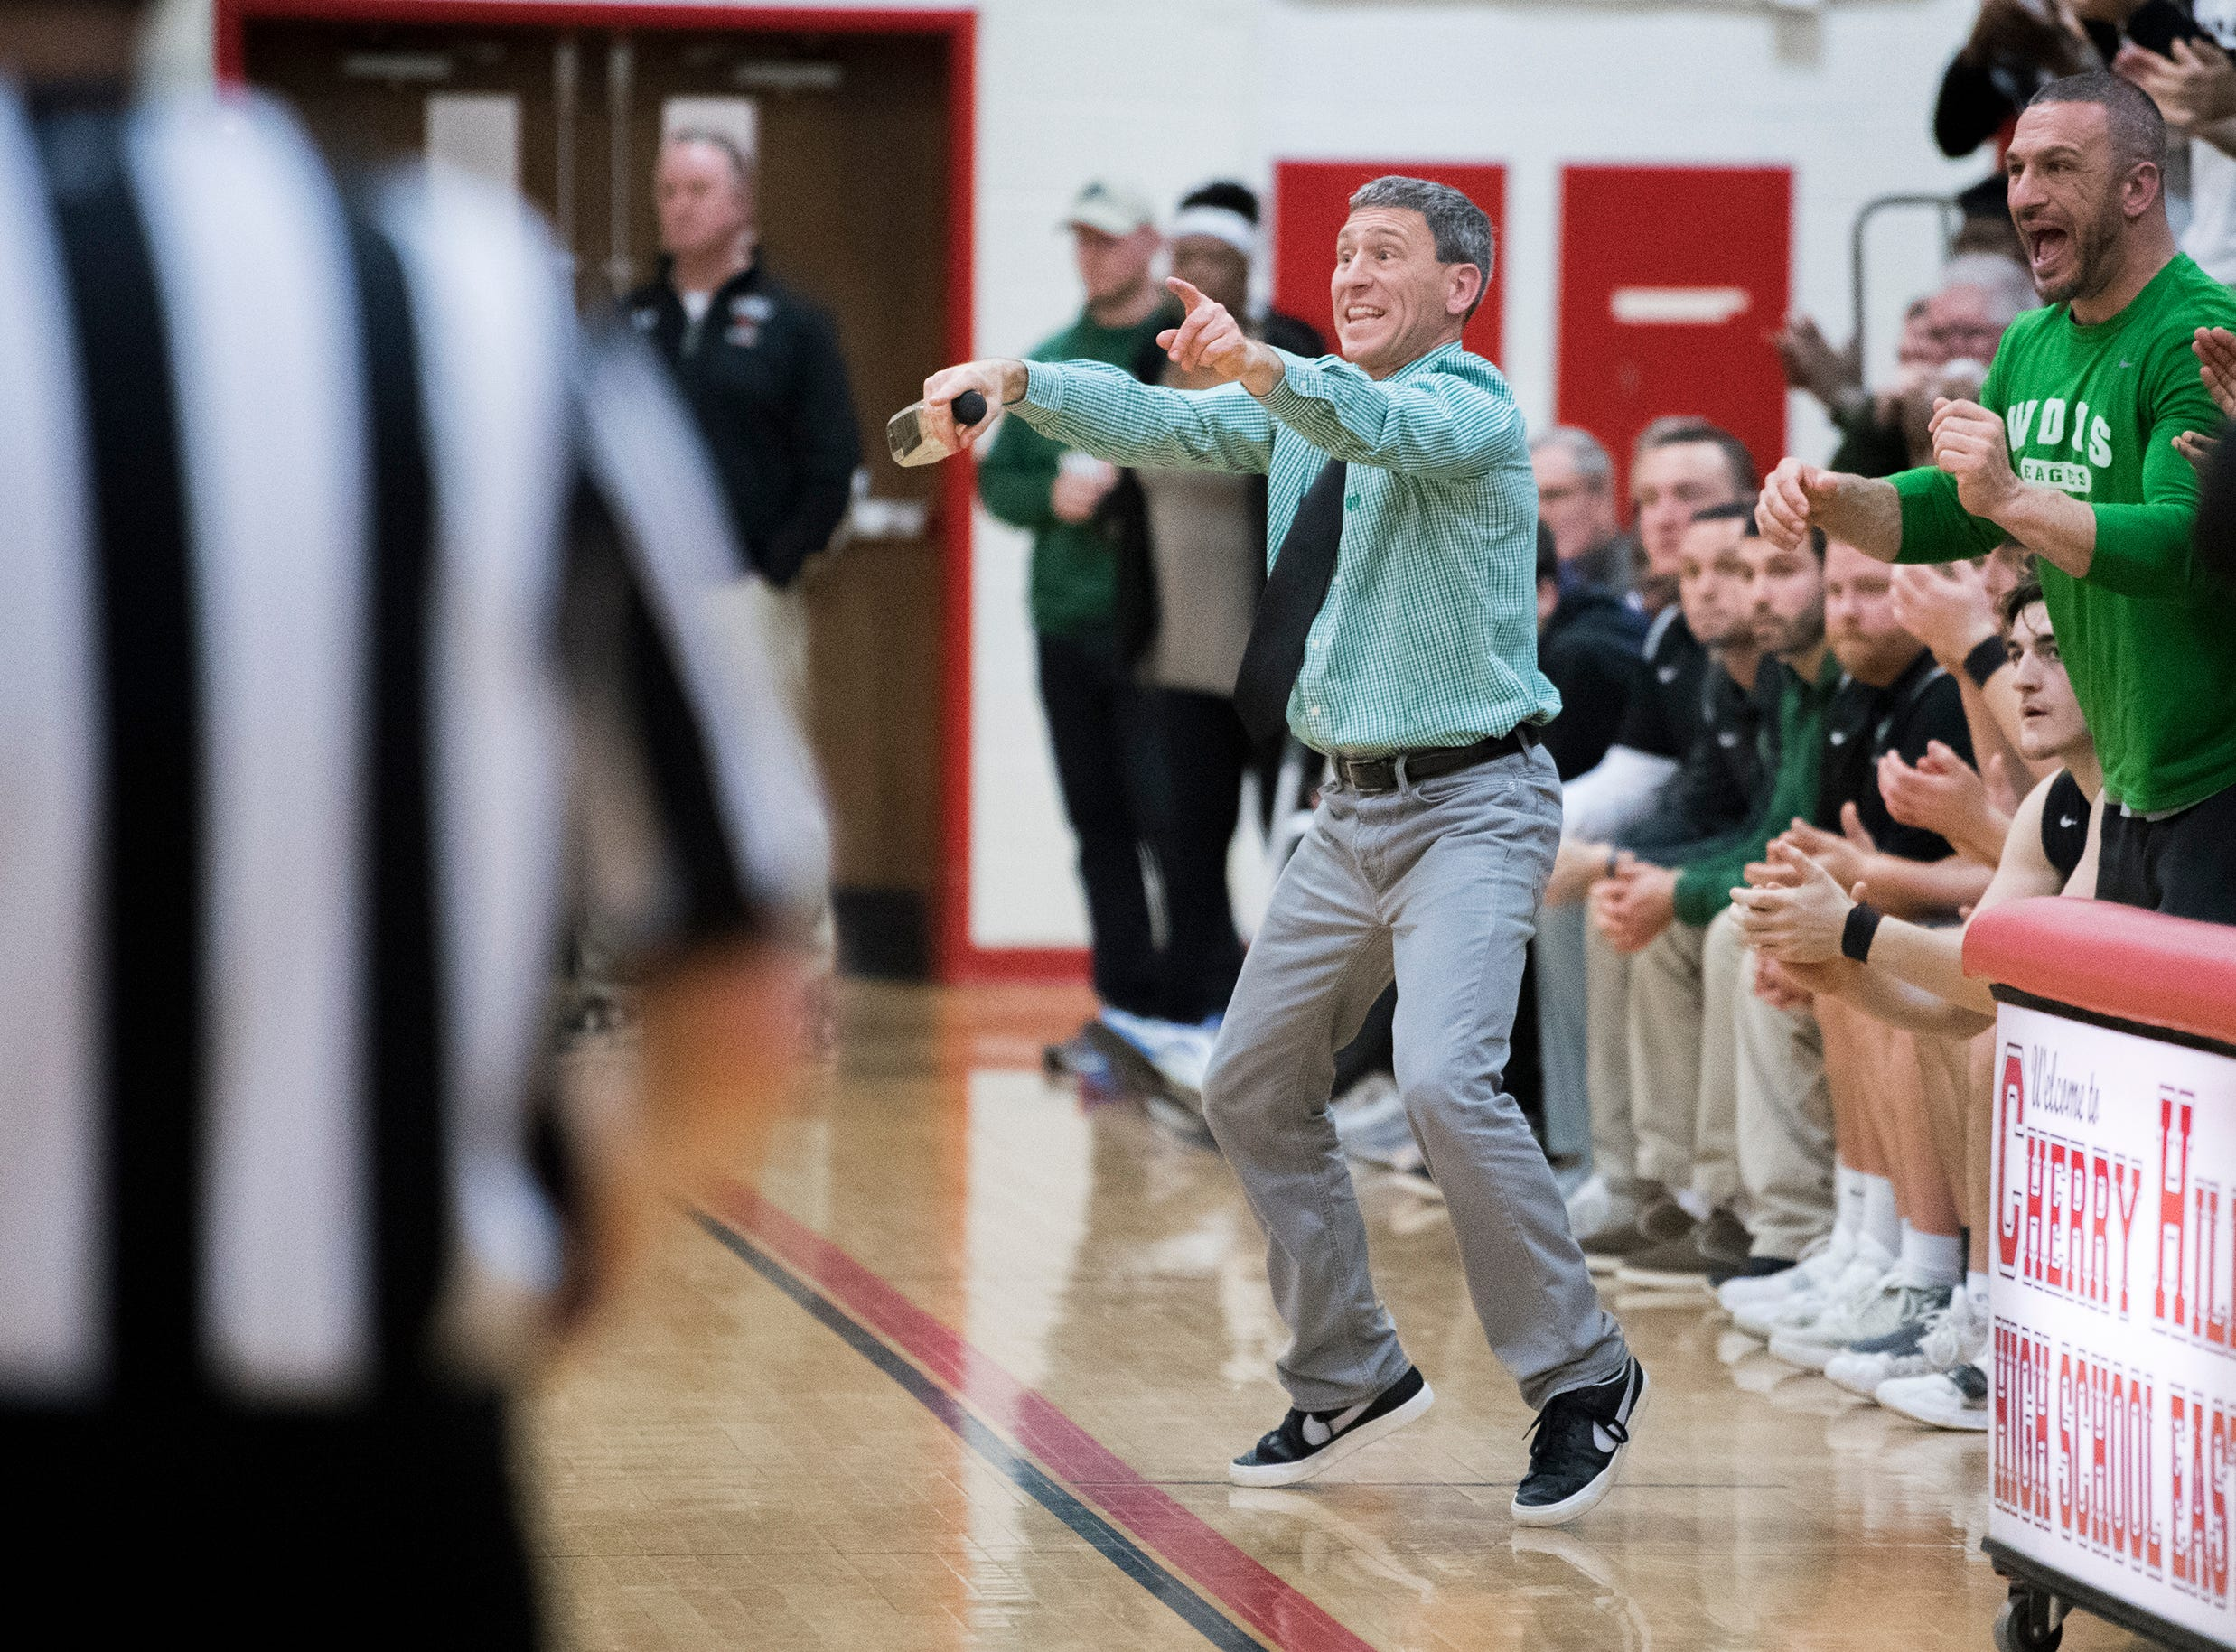 West Deptford coach John McKeown reacts on the sideline during a game against Haddonfield Friday, March 1, 2019 at Cherry Hill High School East in Cherry Hill, N.J. Haddonfield won 51-30.